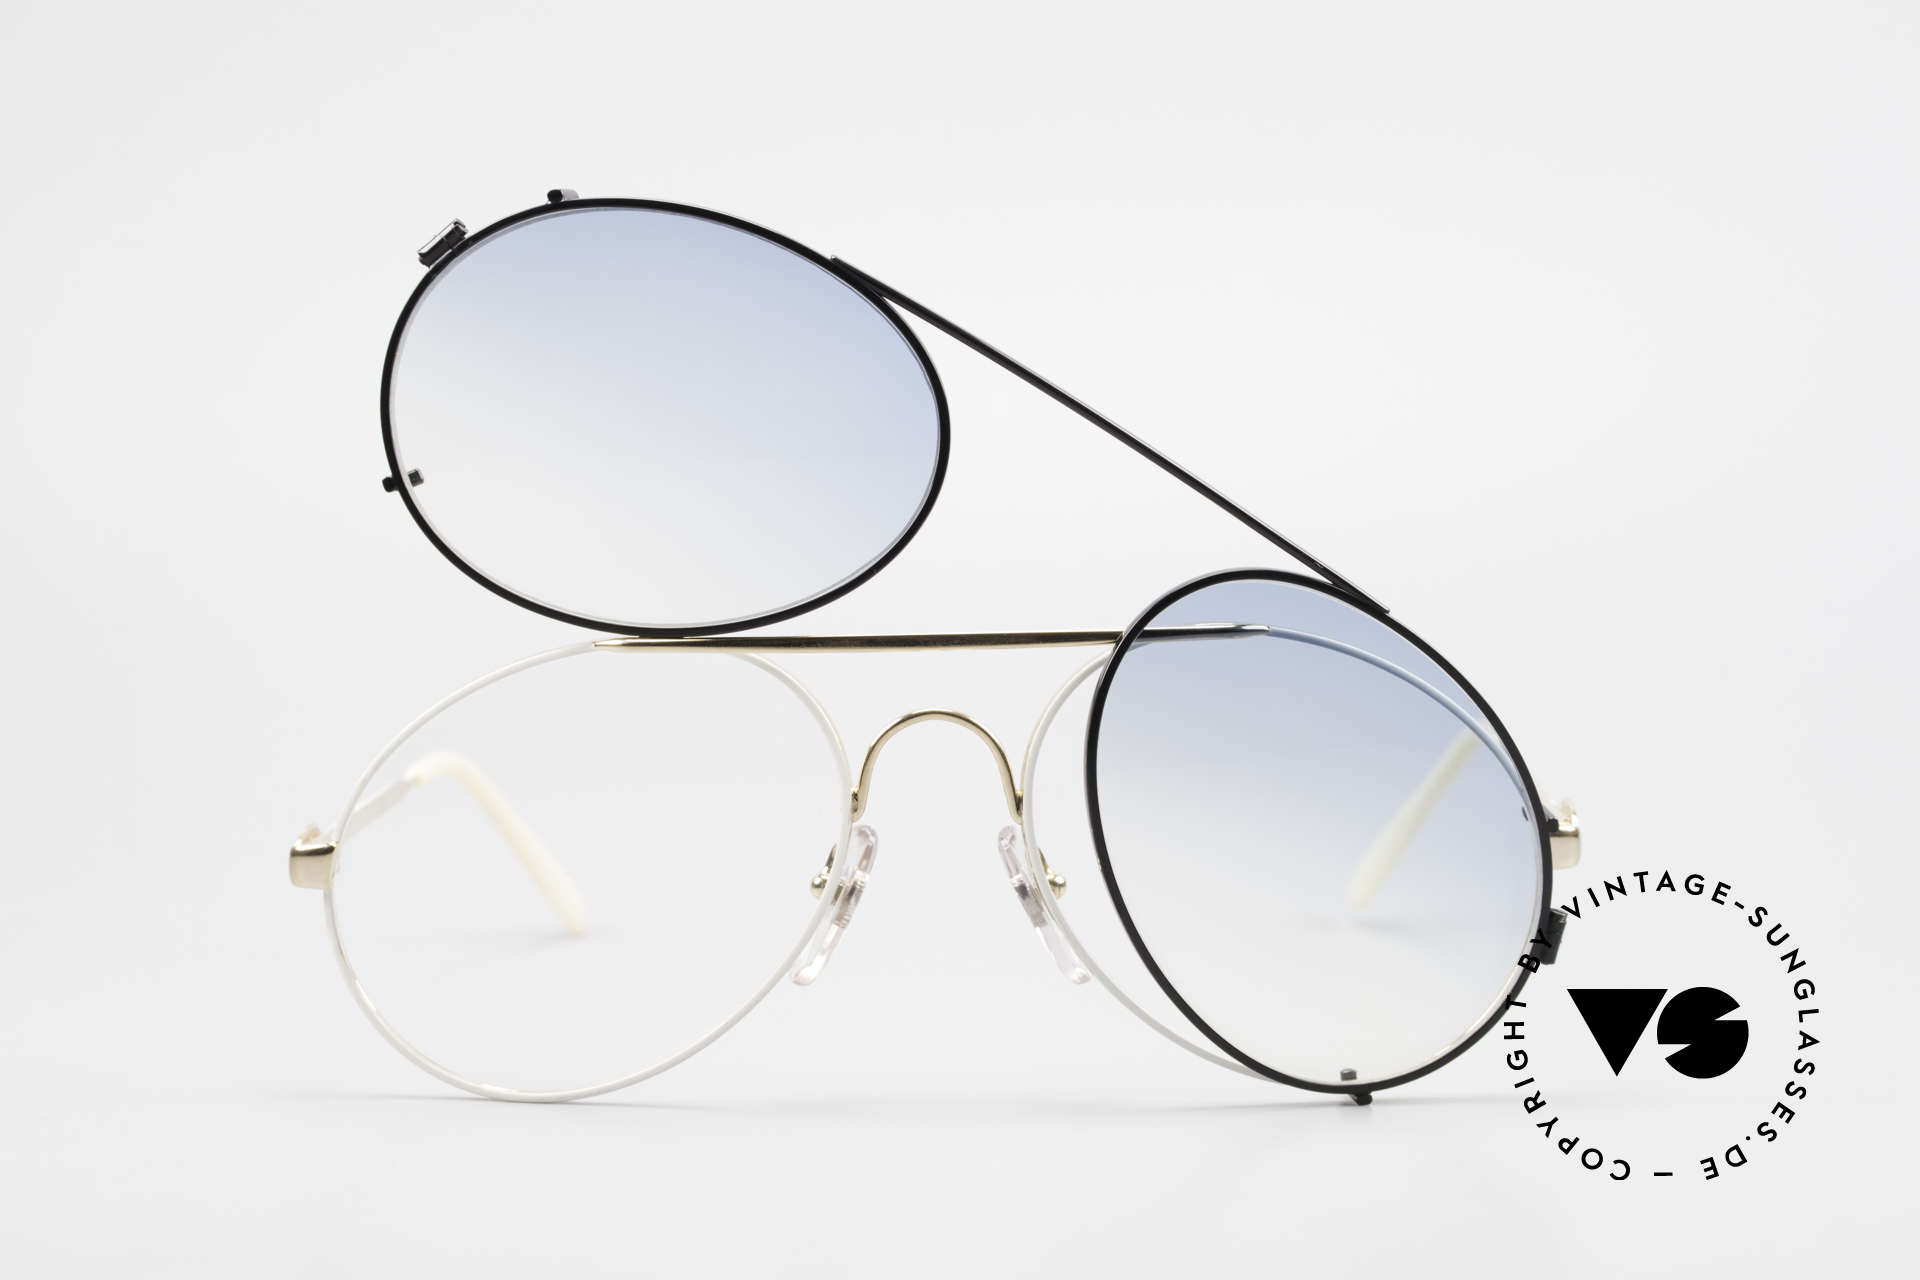 Bugatti 65987 Vintage Frame With Clip On, unworn; like all our vintage Bugatti sunglasses, Made for Men